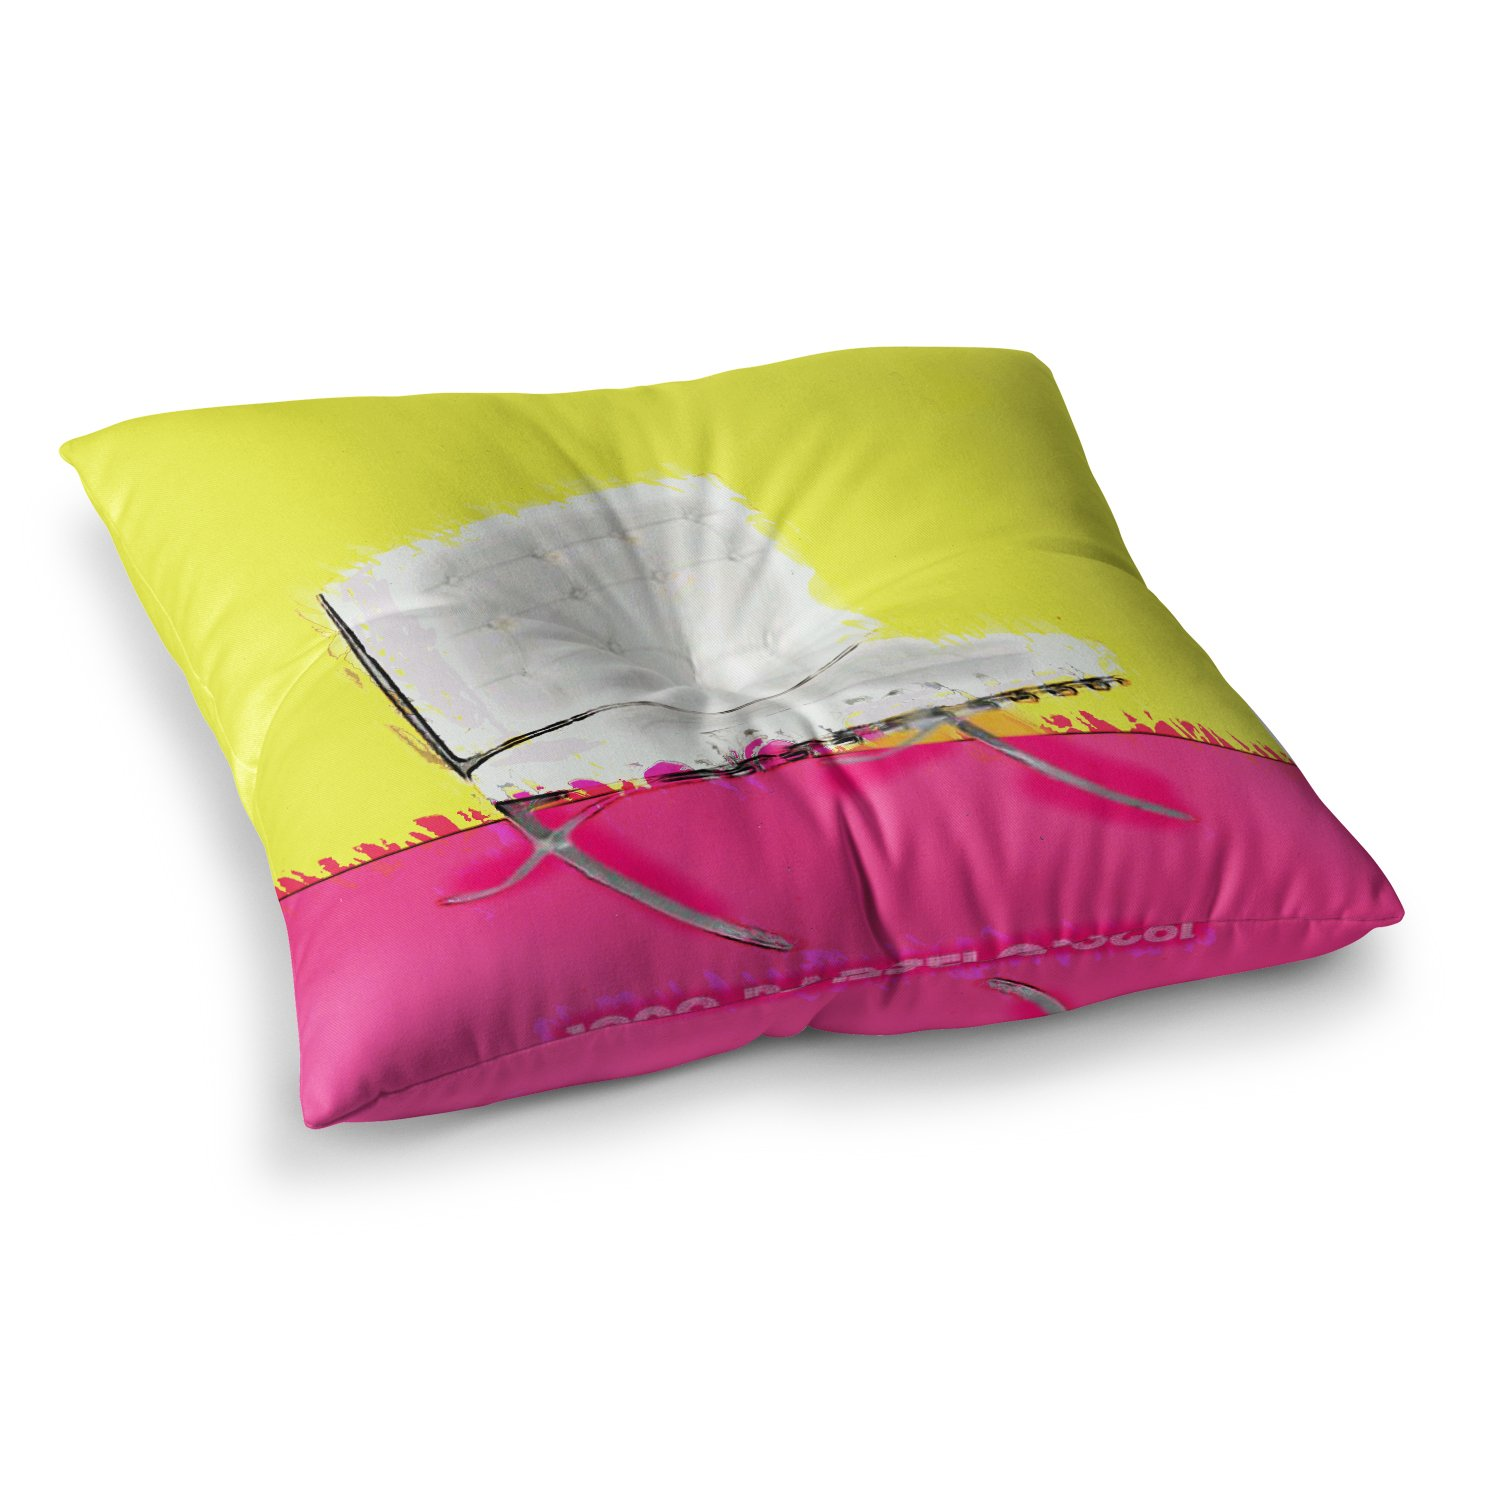 23 x 23 Square Floor Pillow Kess InHouse Oriana Cordero Barcelona Chair Pink Yellow